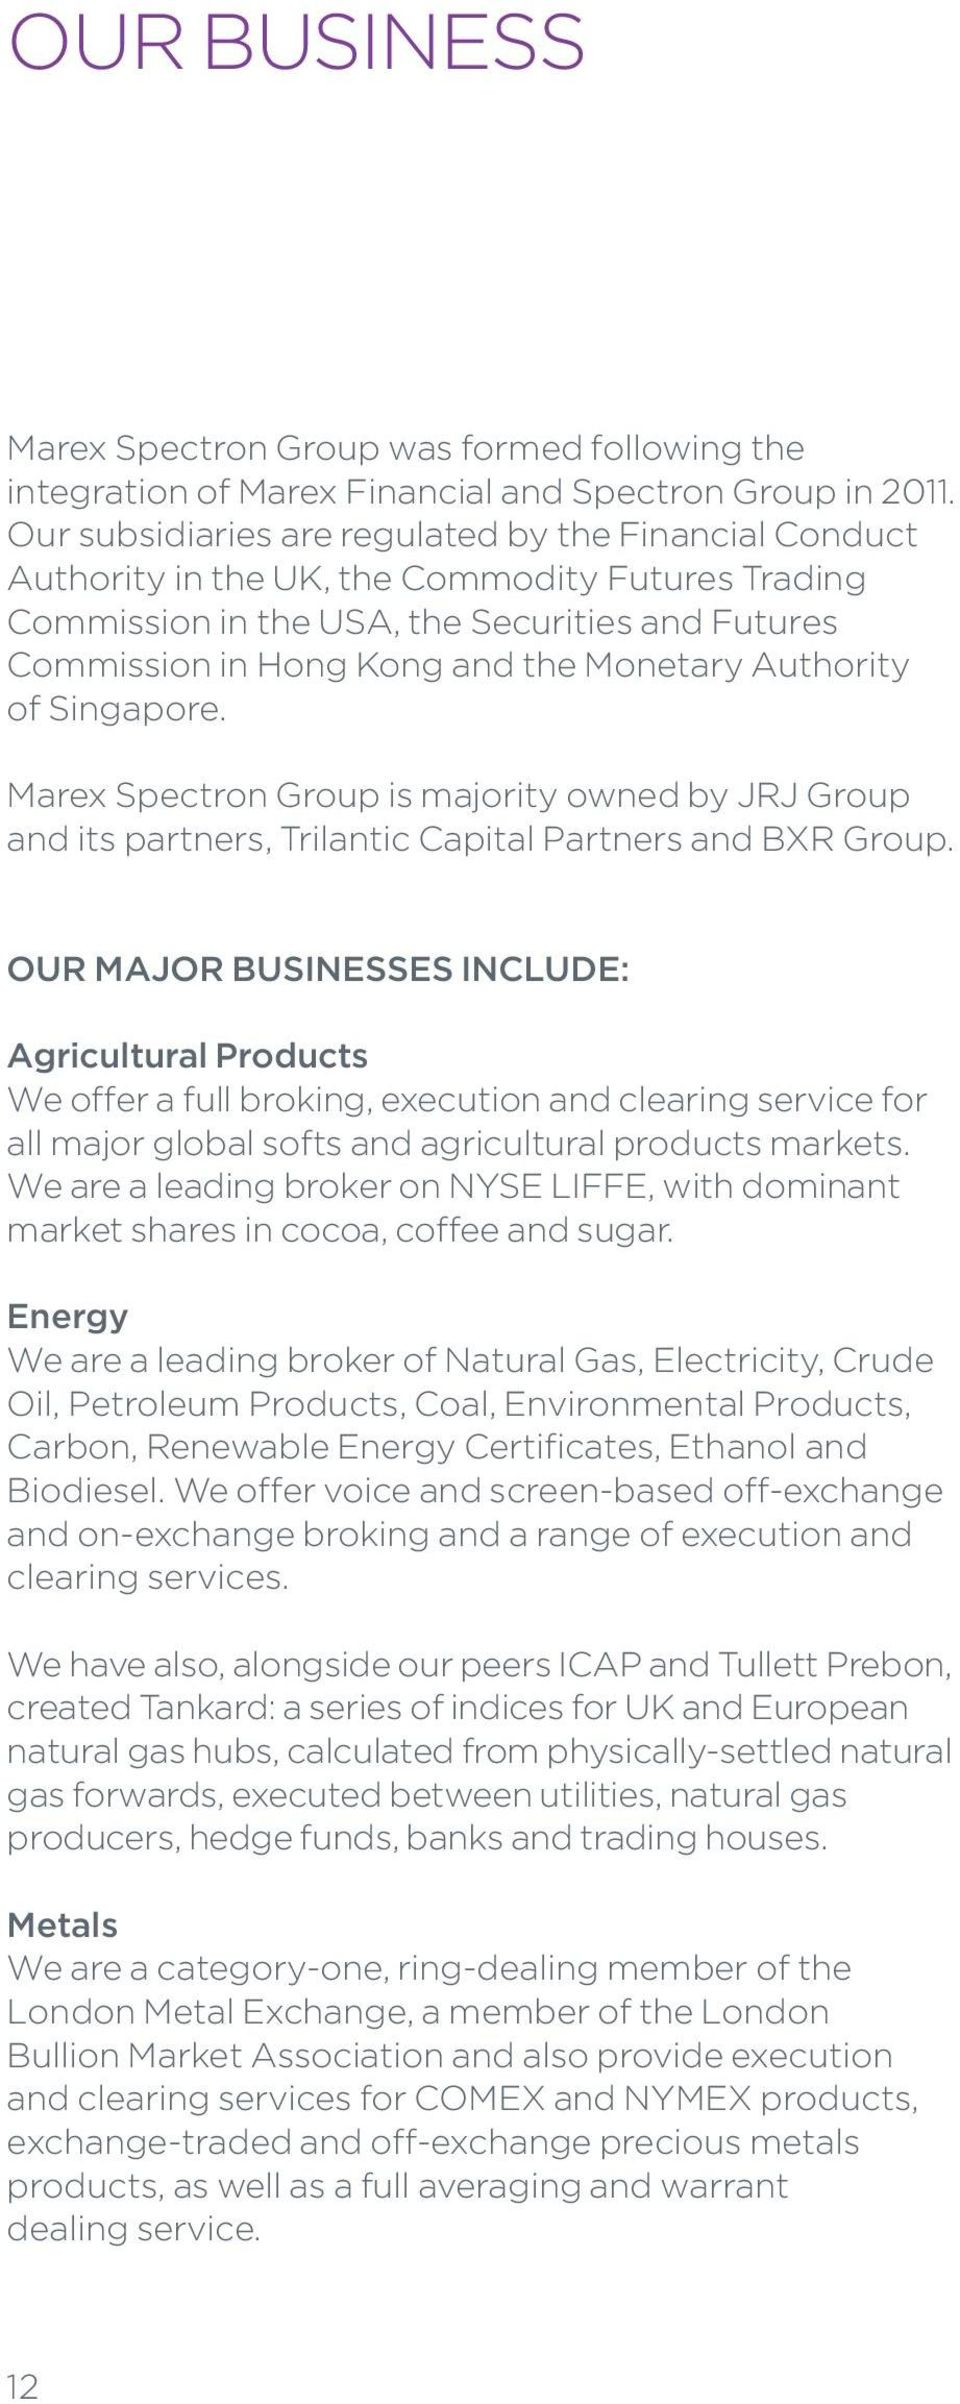 Authority of Singapore. Marex Spectron Group is majority owned by JRJ Group and its partners, Trilantic Capital Partners and BXR Group.